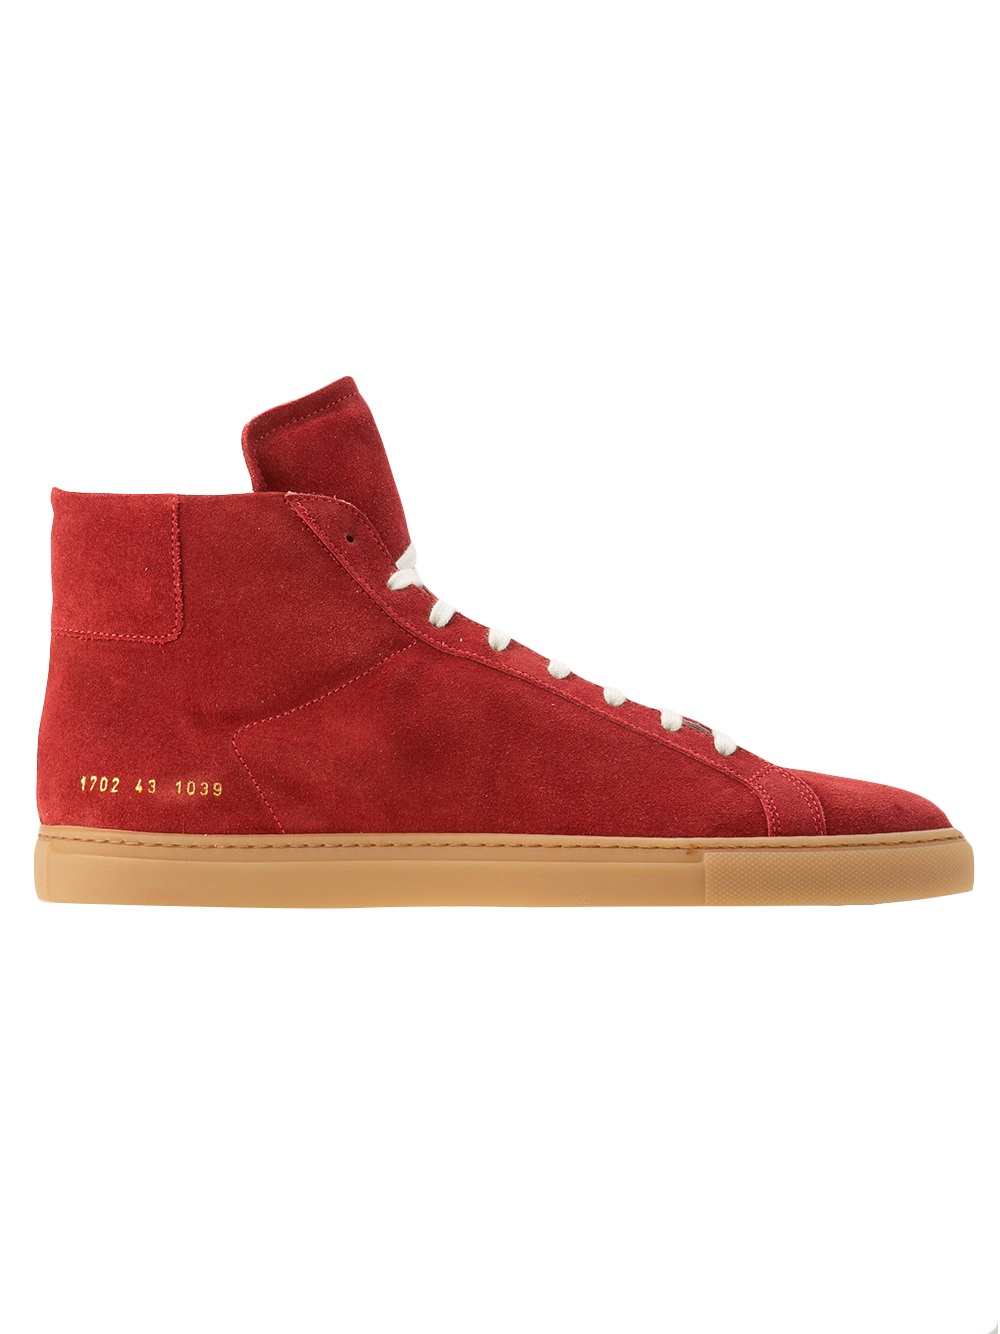 common projects achilles sue trainer in red for men lyst. Black Bedroom Furniture Sets. Home Design Ideas